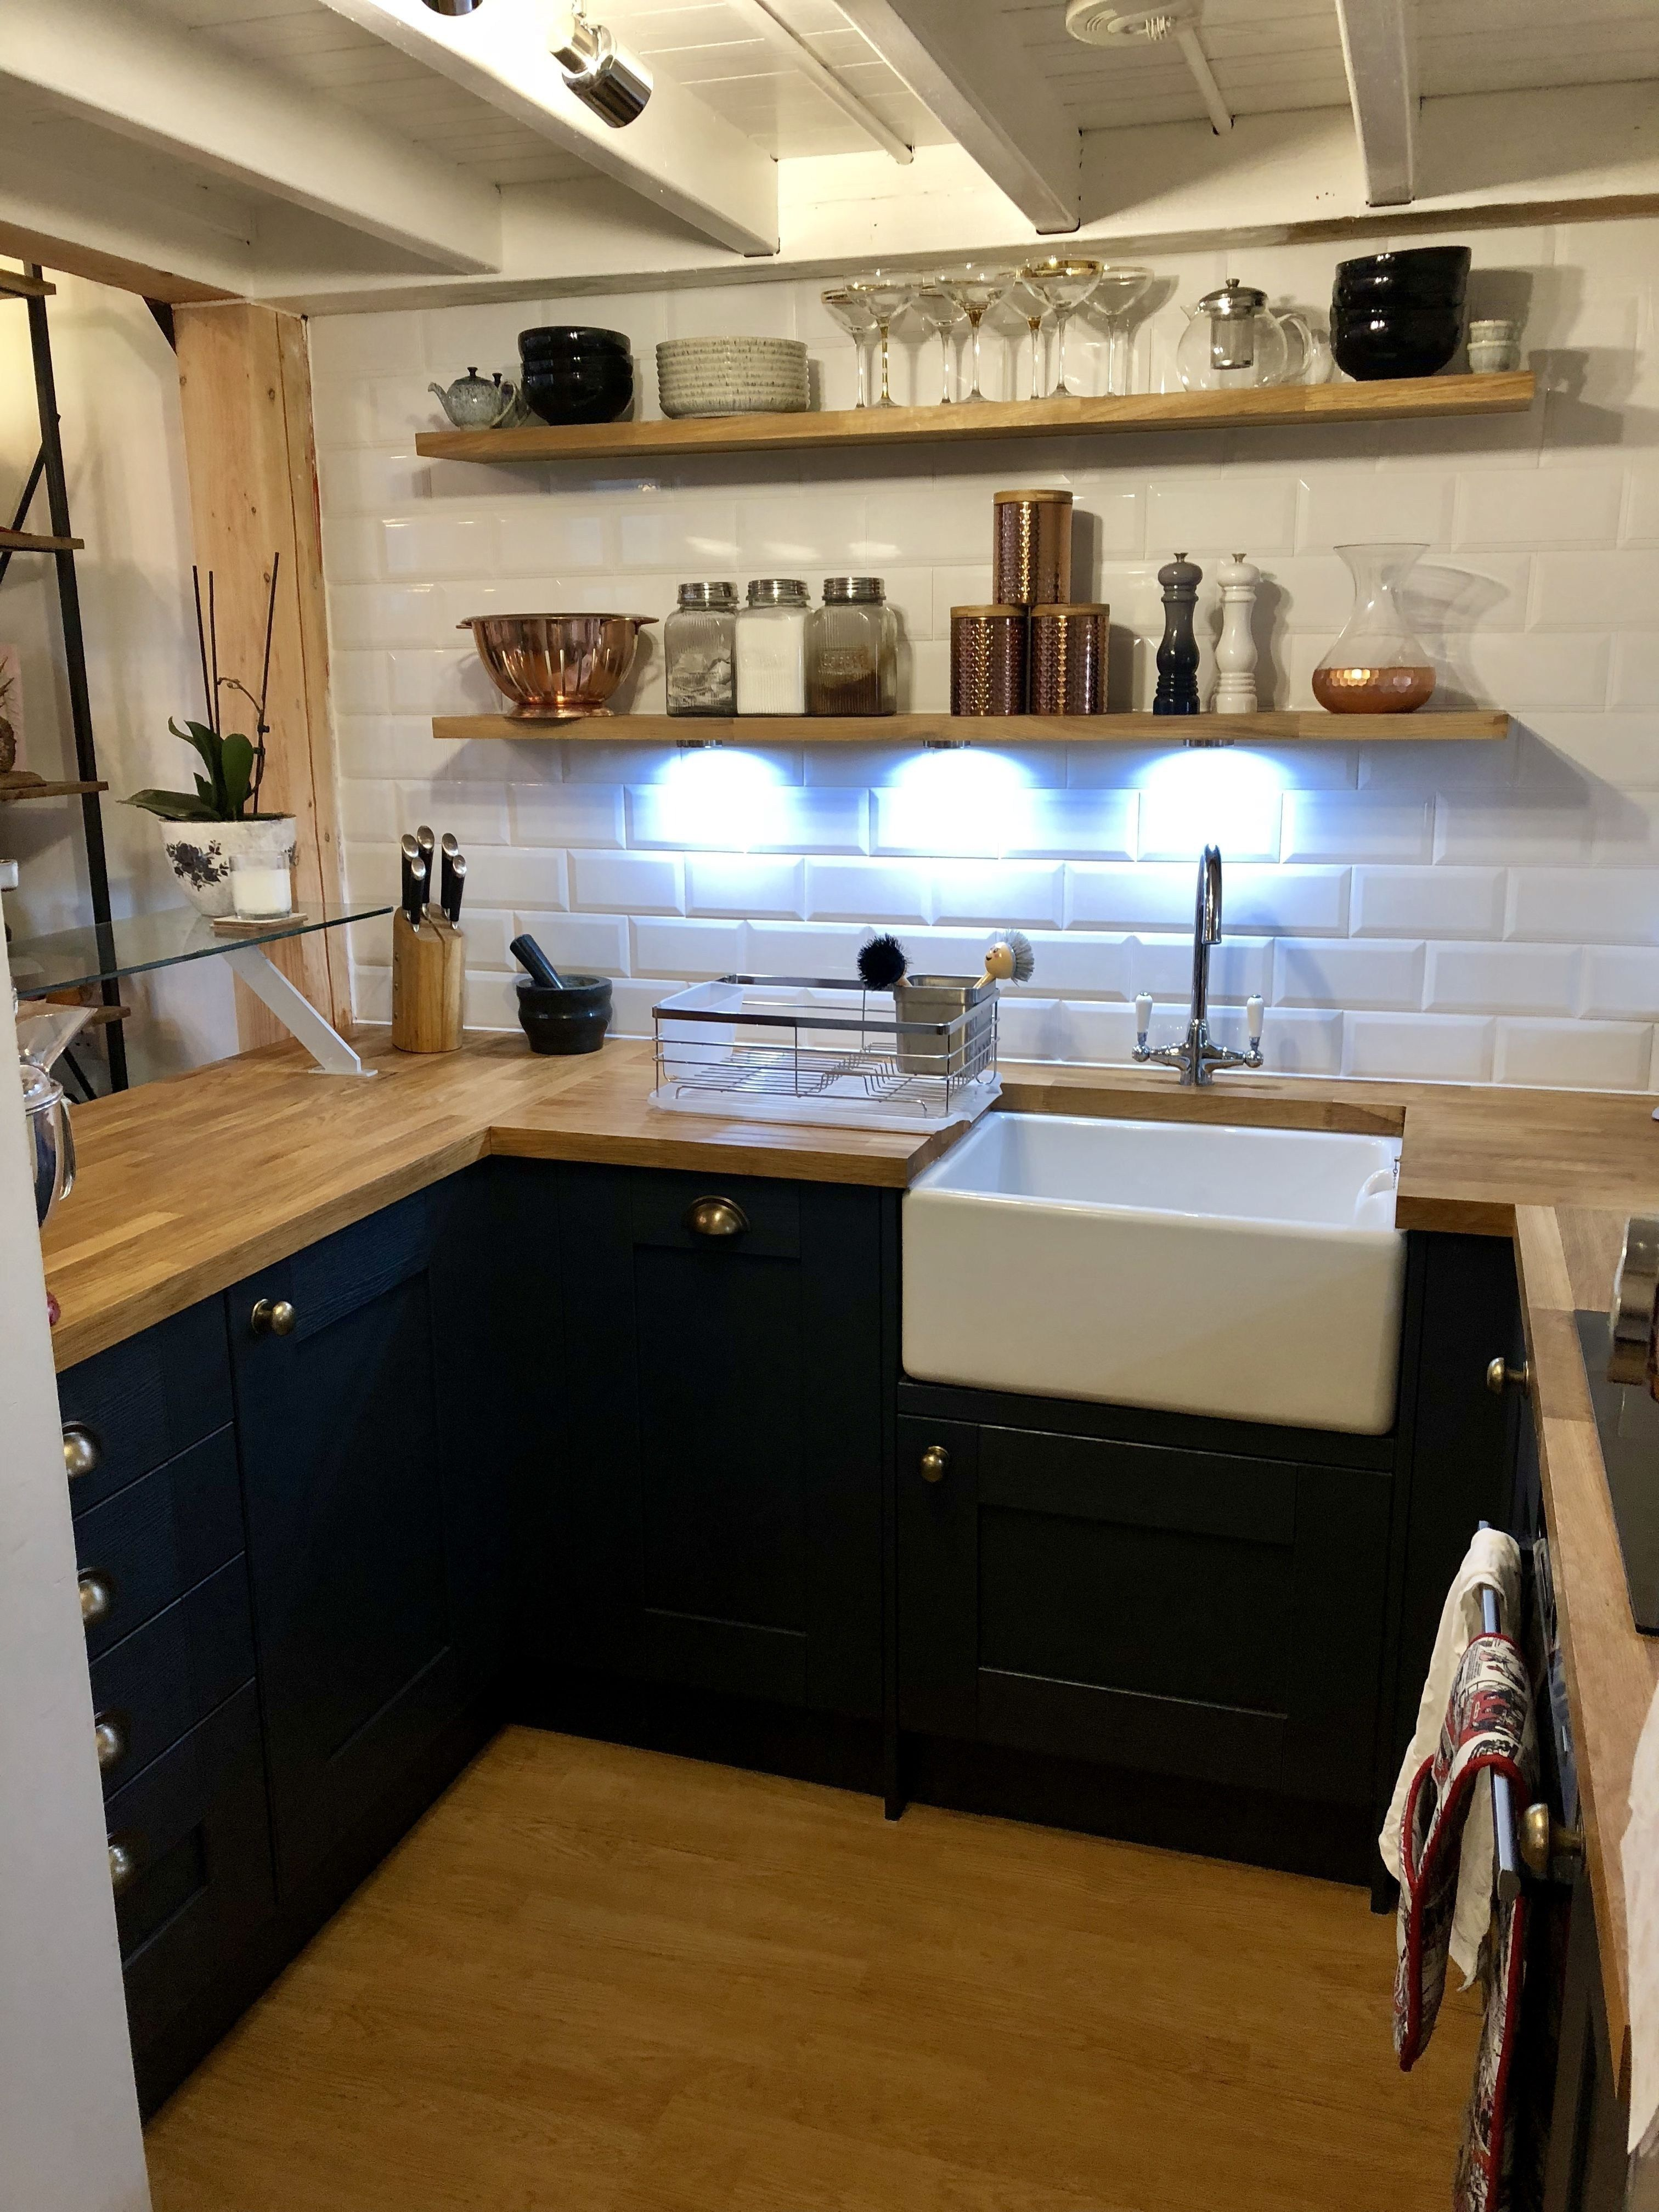 Beautiful Wickes Fitted Bedroom Furniture | Small kitchen ...